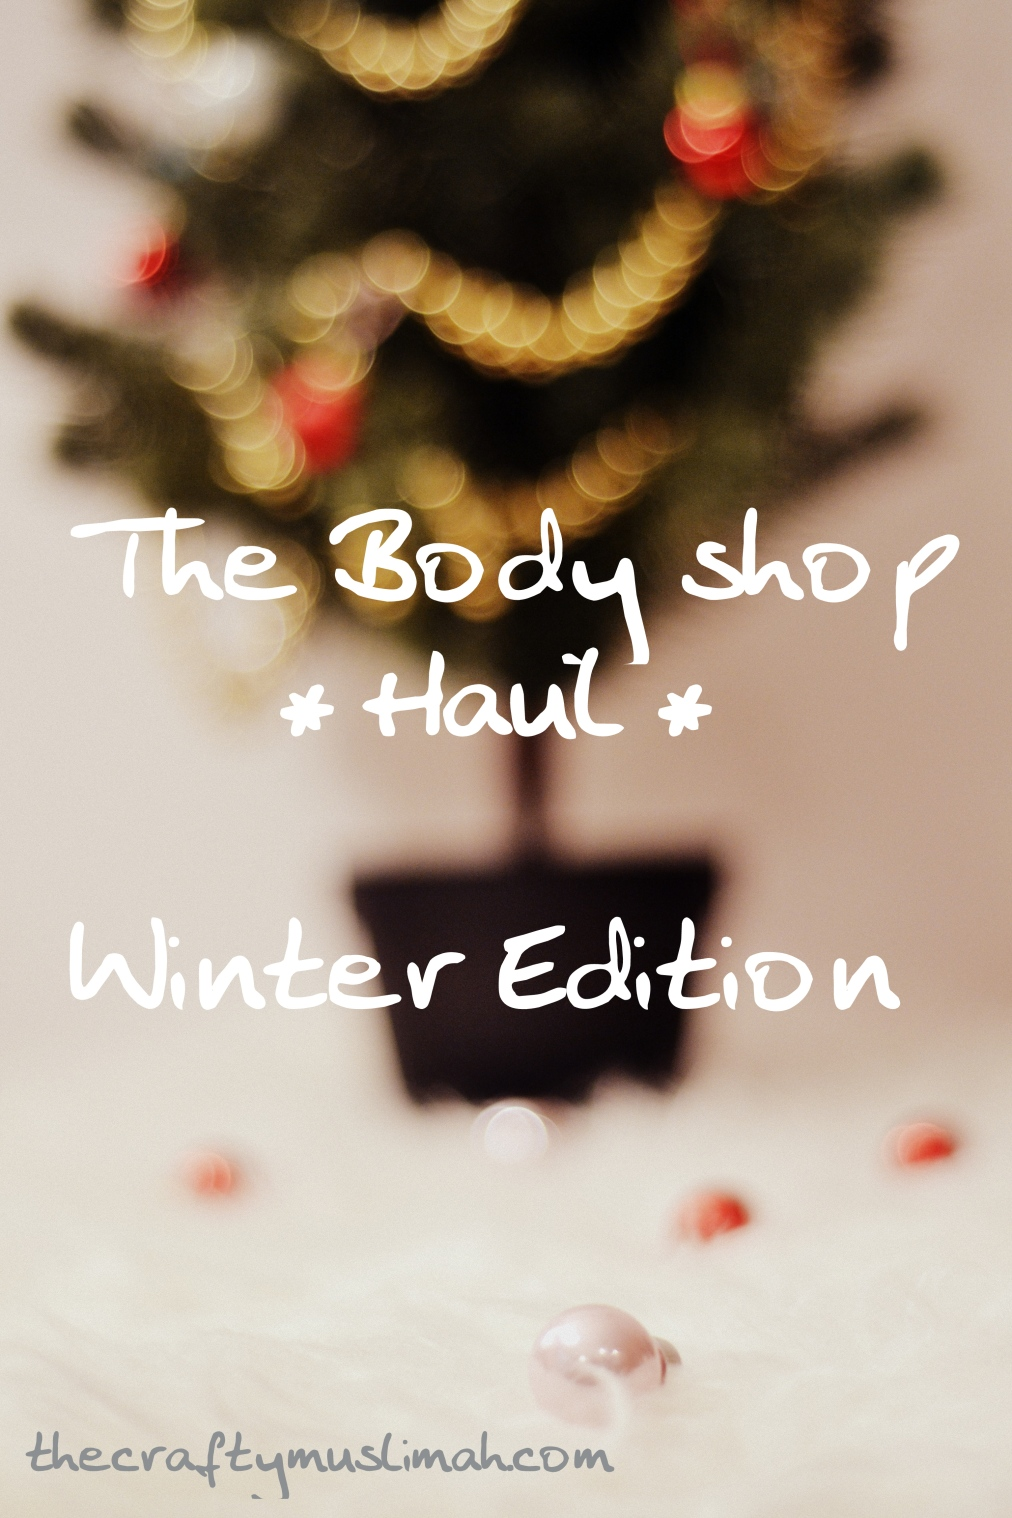 The Body Shop Haul- Winter Edition.